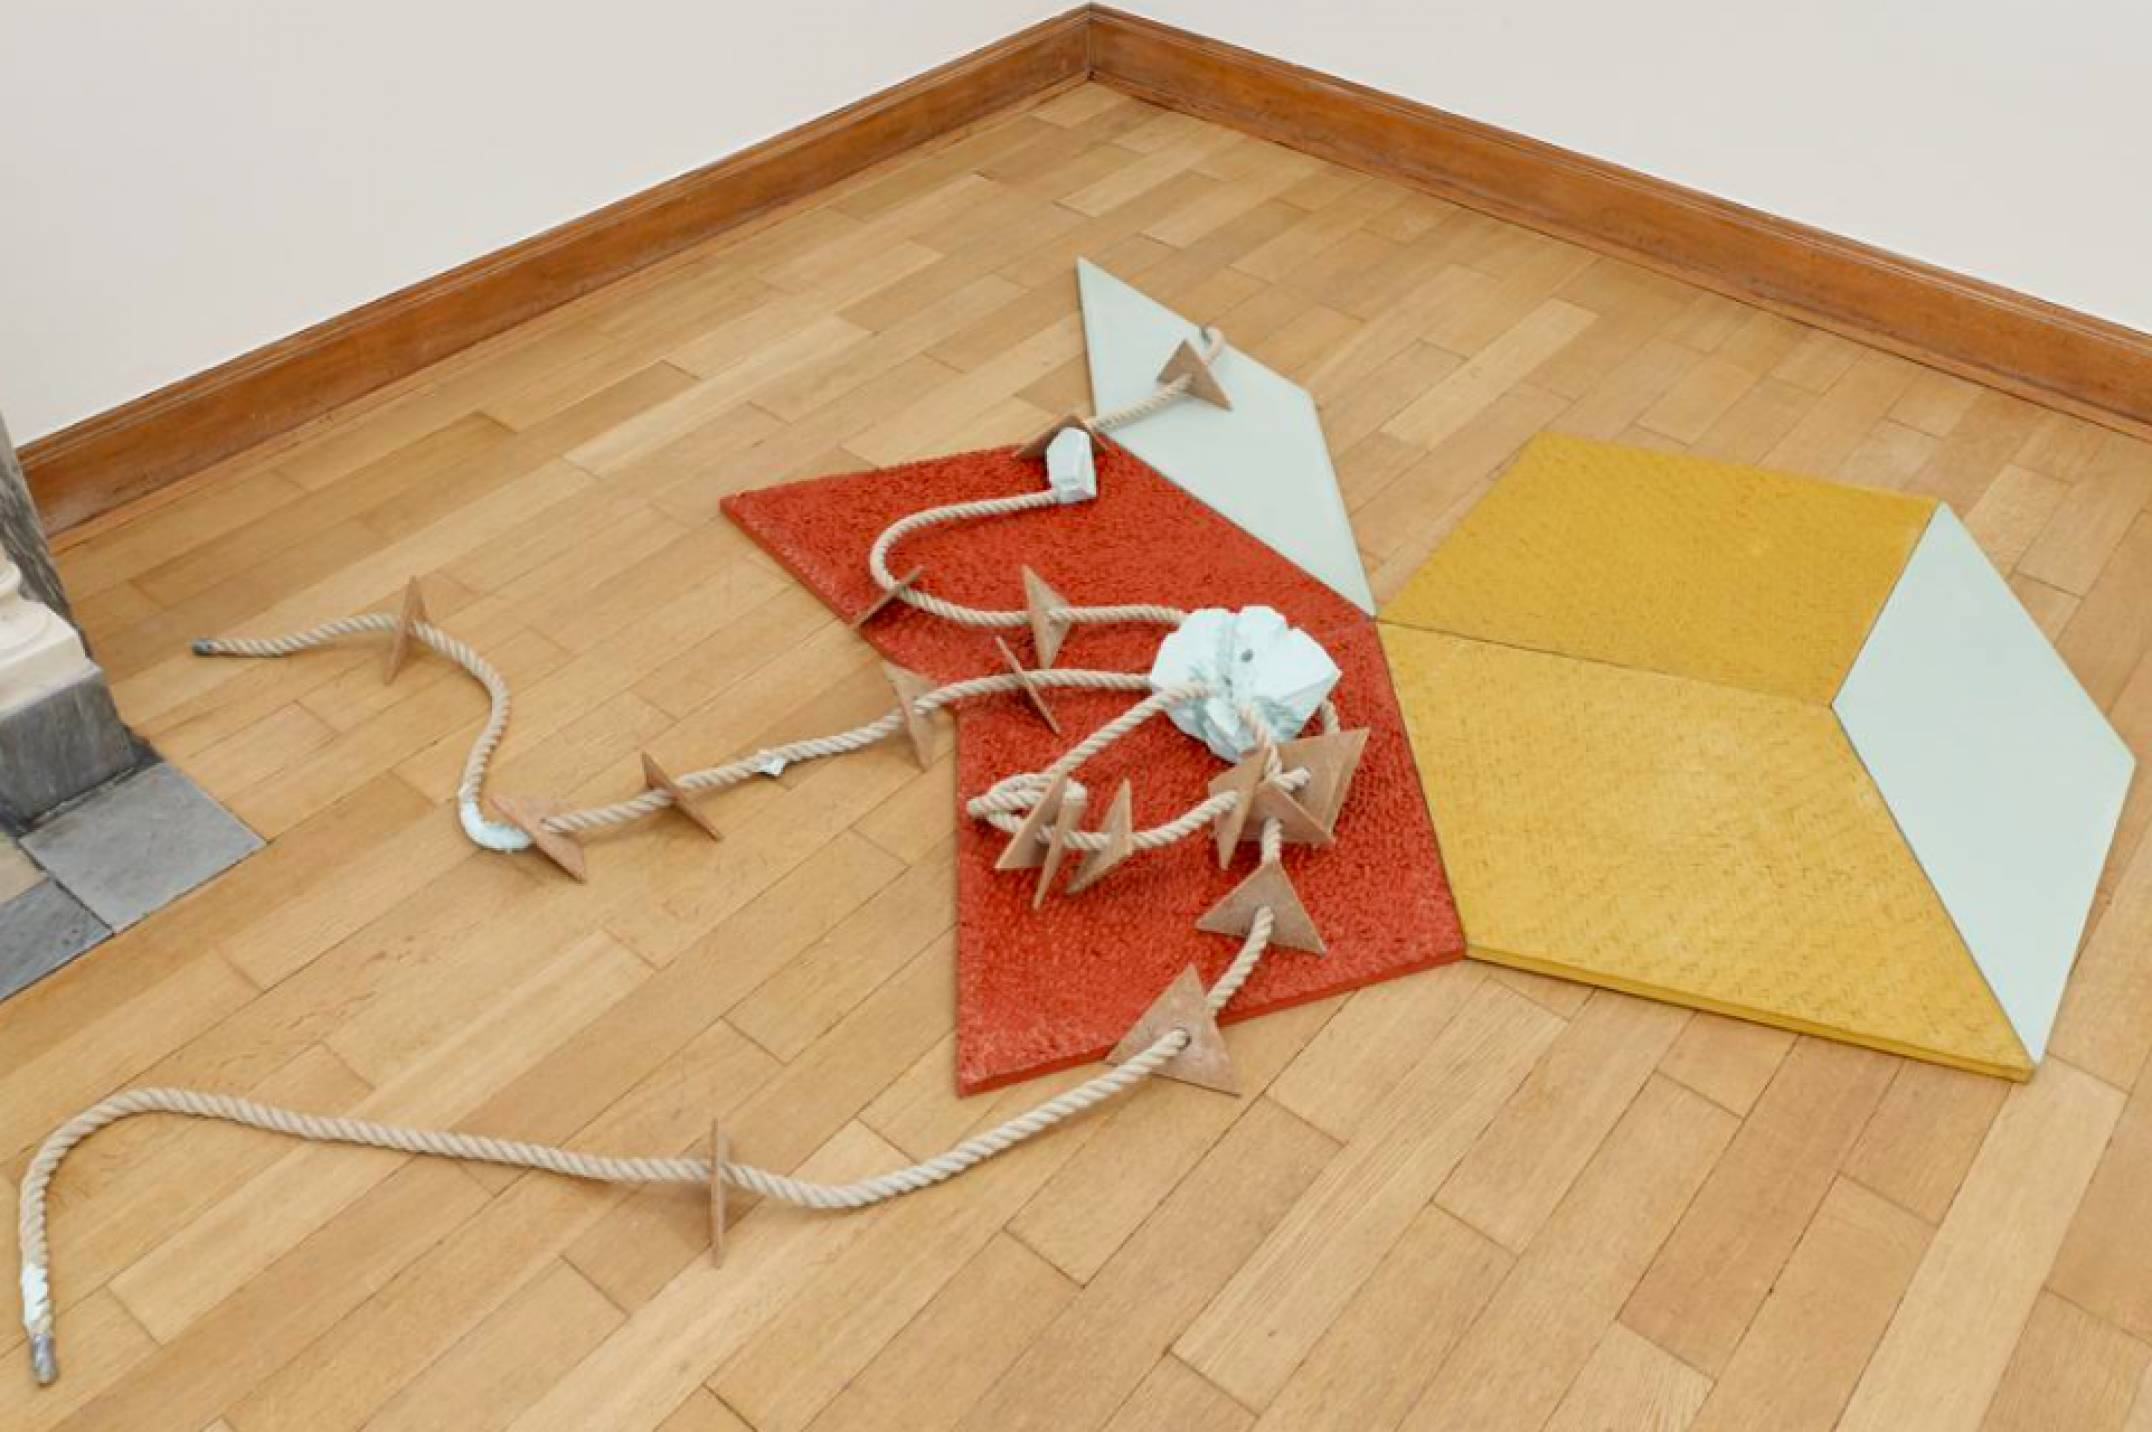 Mariana Castillo Deball, <em>Icosahedron</em>, 2017, pigmented plaster, hemp rope and colored concrete tiles with relief, 265 × 205 cm - Mendes Wood DM